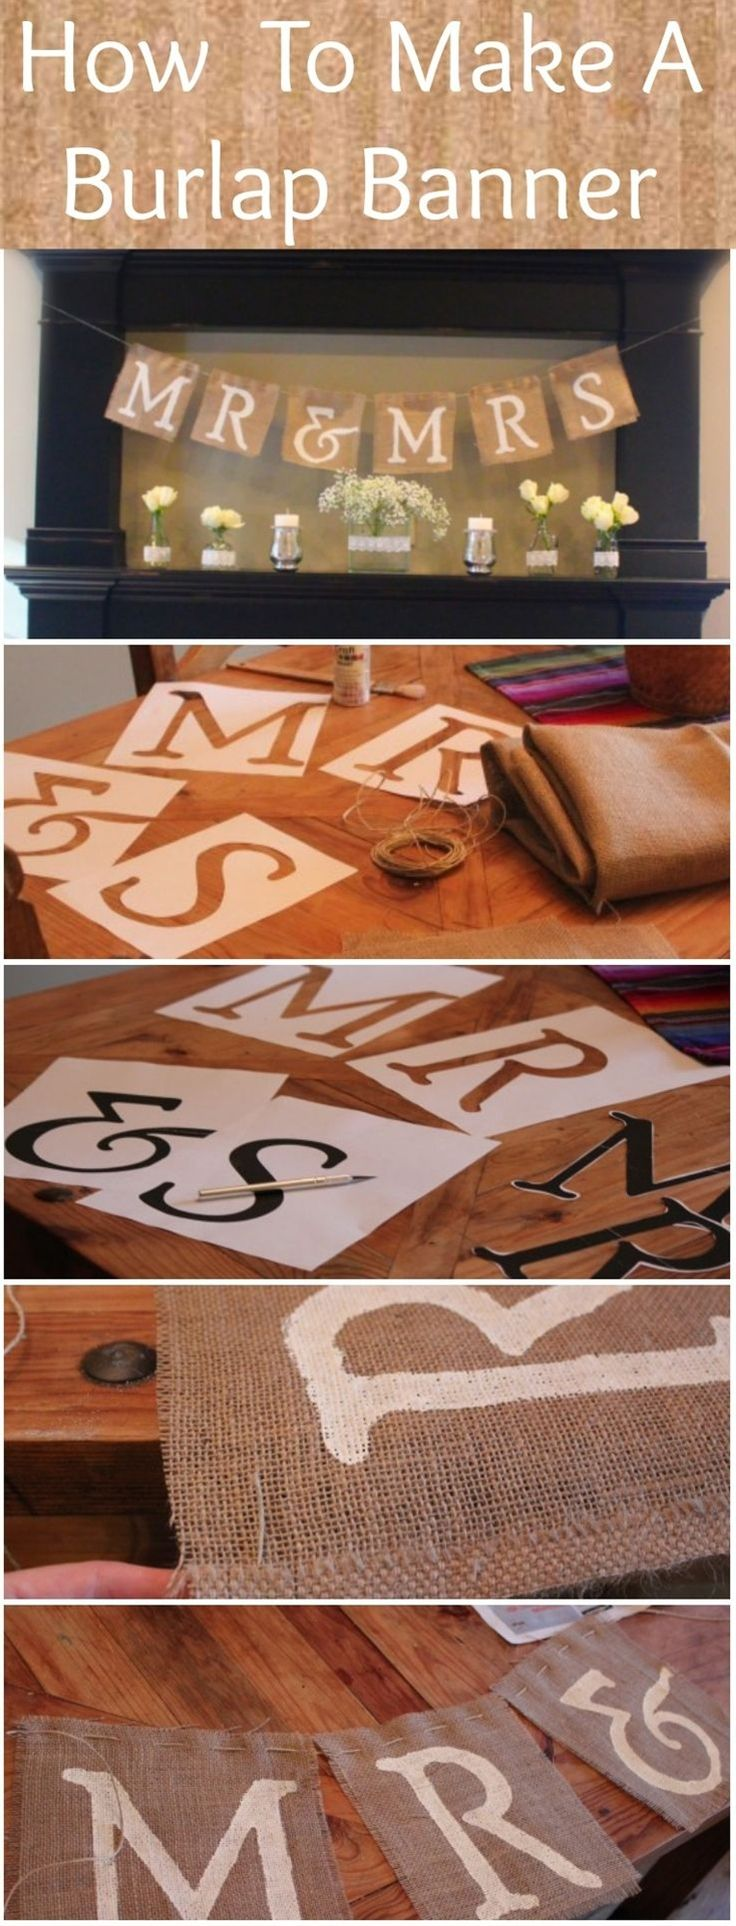 How To Make A Mr. & Mrs. Burlap Banner